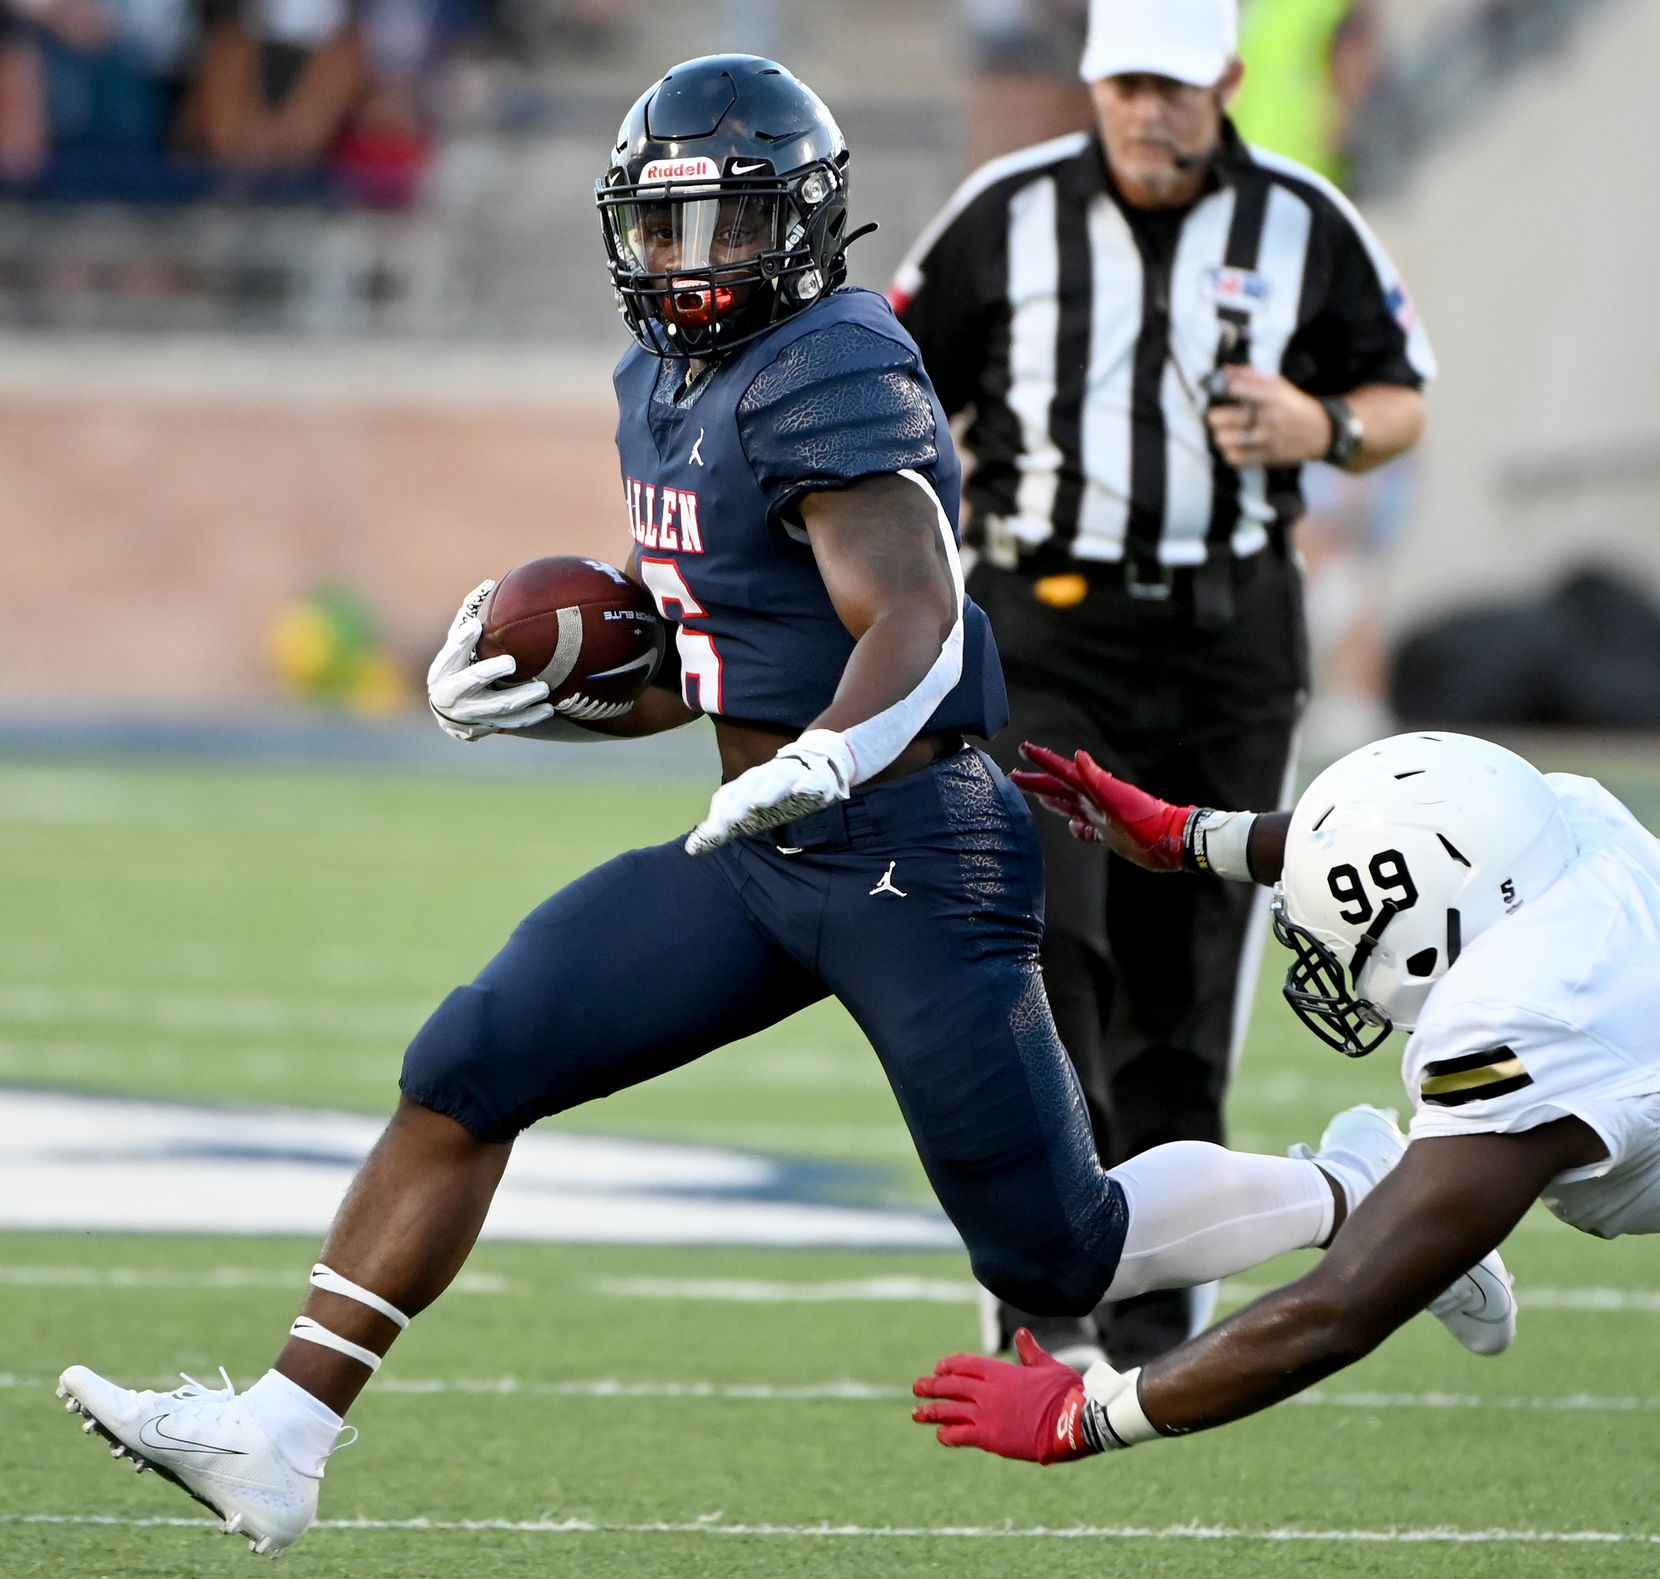 Allen's Devyn Turner runs through a tackle attempt by Plano East's Cedric Diggs (99) in the first half during a high school football game between Plano East and Allen, Friday, Aug. 27, 2021, in Allen, Texas. (Matt Strasen/Special Contributor)